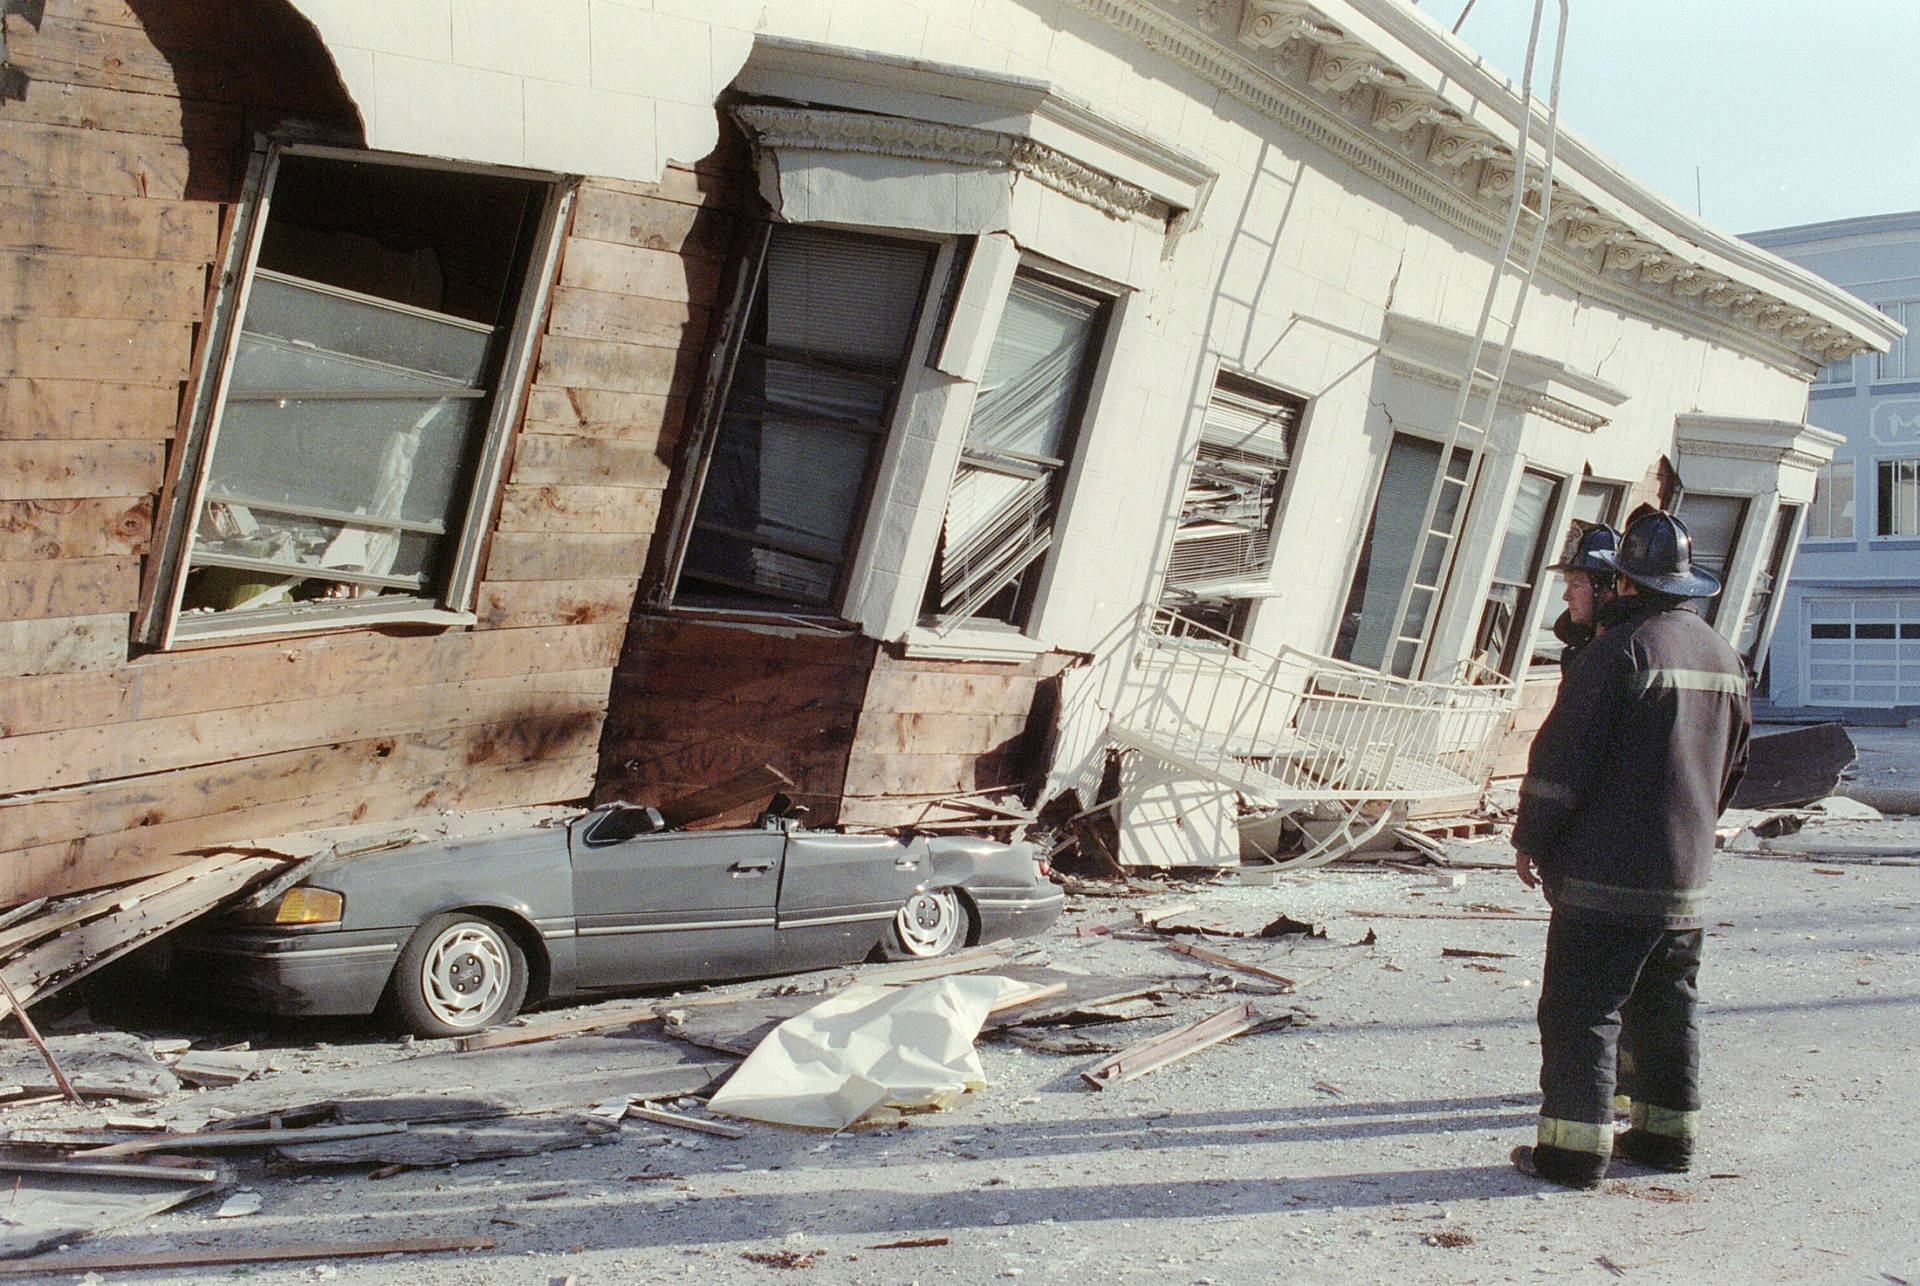 Firemen stand in front of a collapsed house in the Marina district after the 1989 Loma Prieta earthquake in San Francisco.